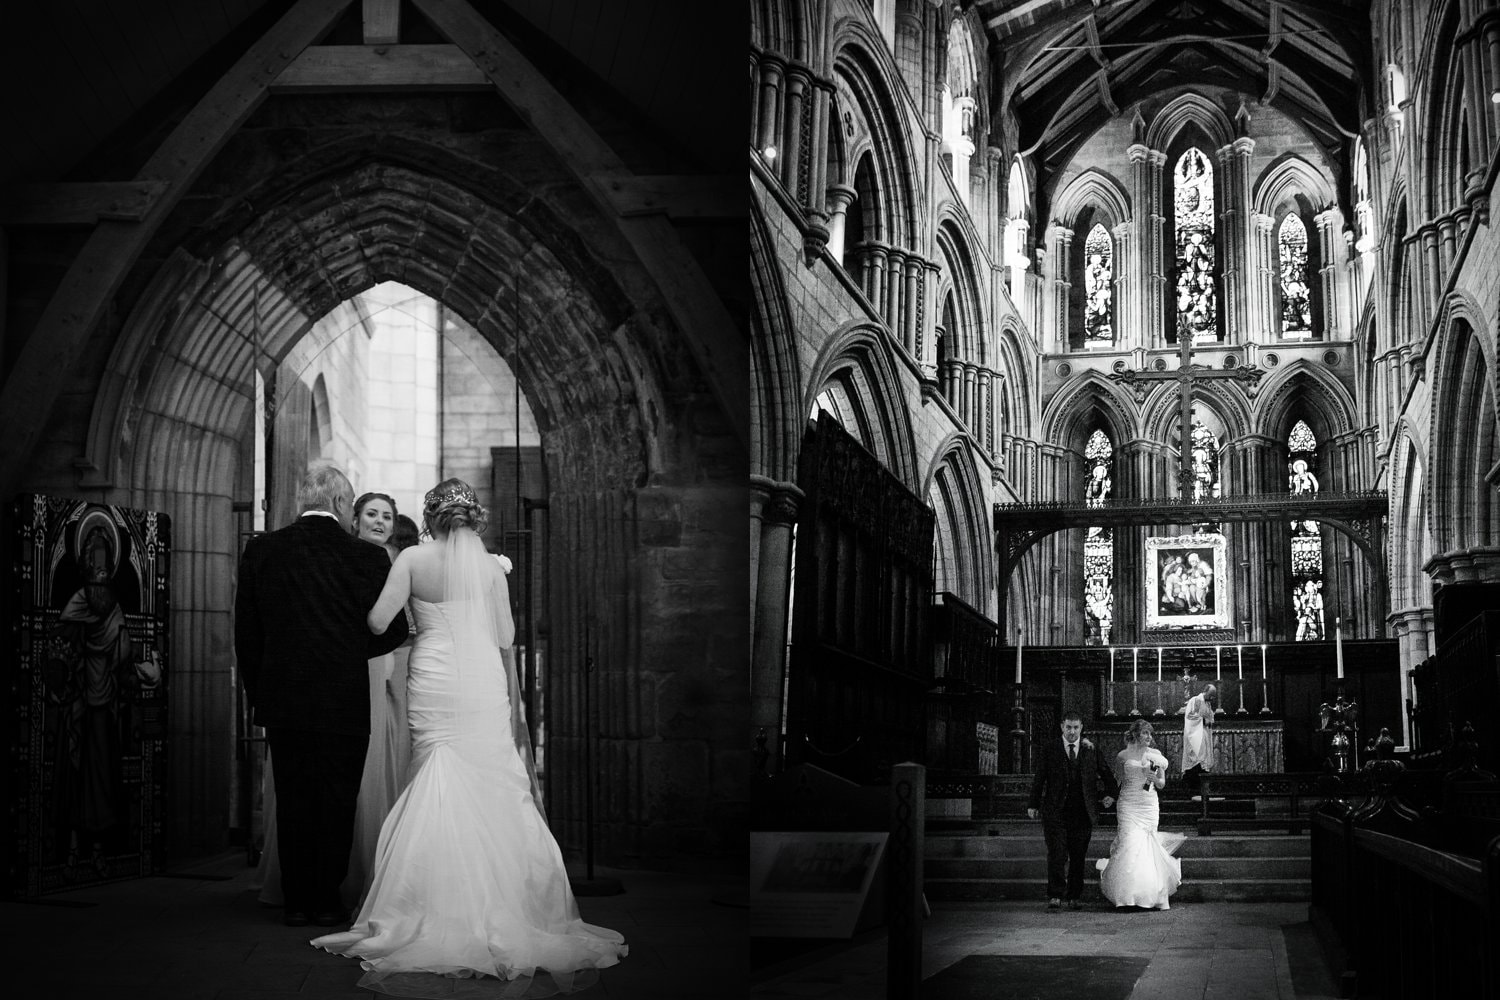 Hexham Abbey Wedding, inside the abbey